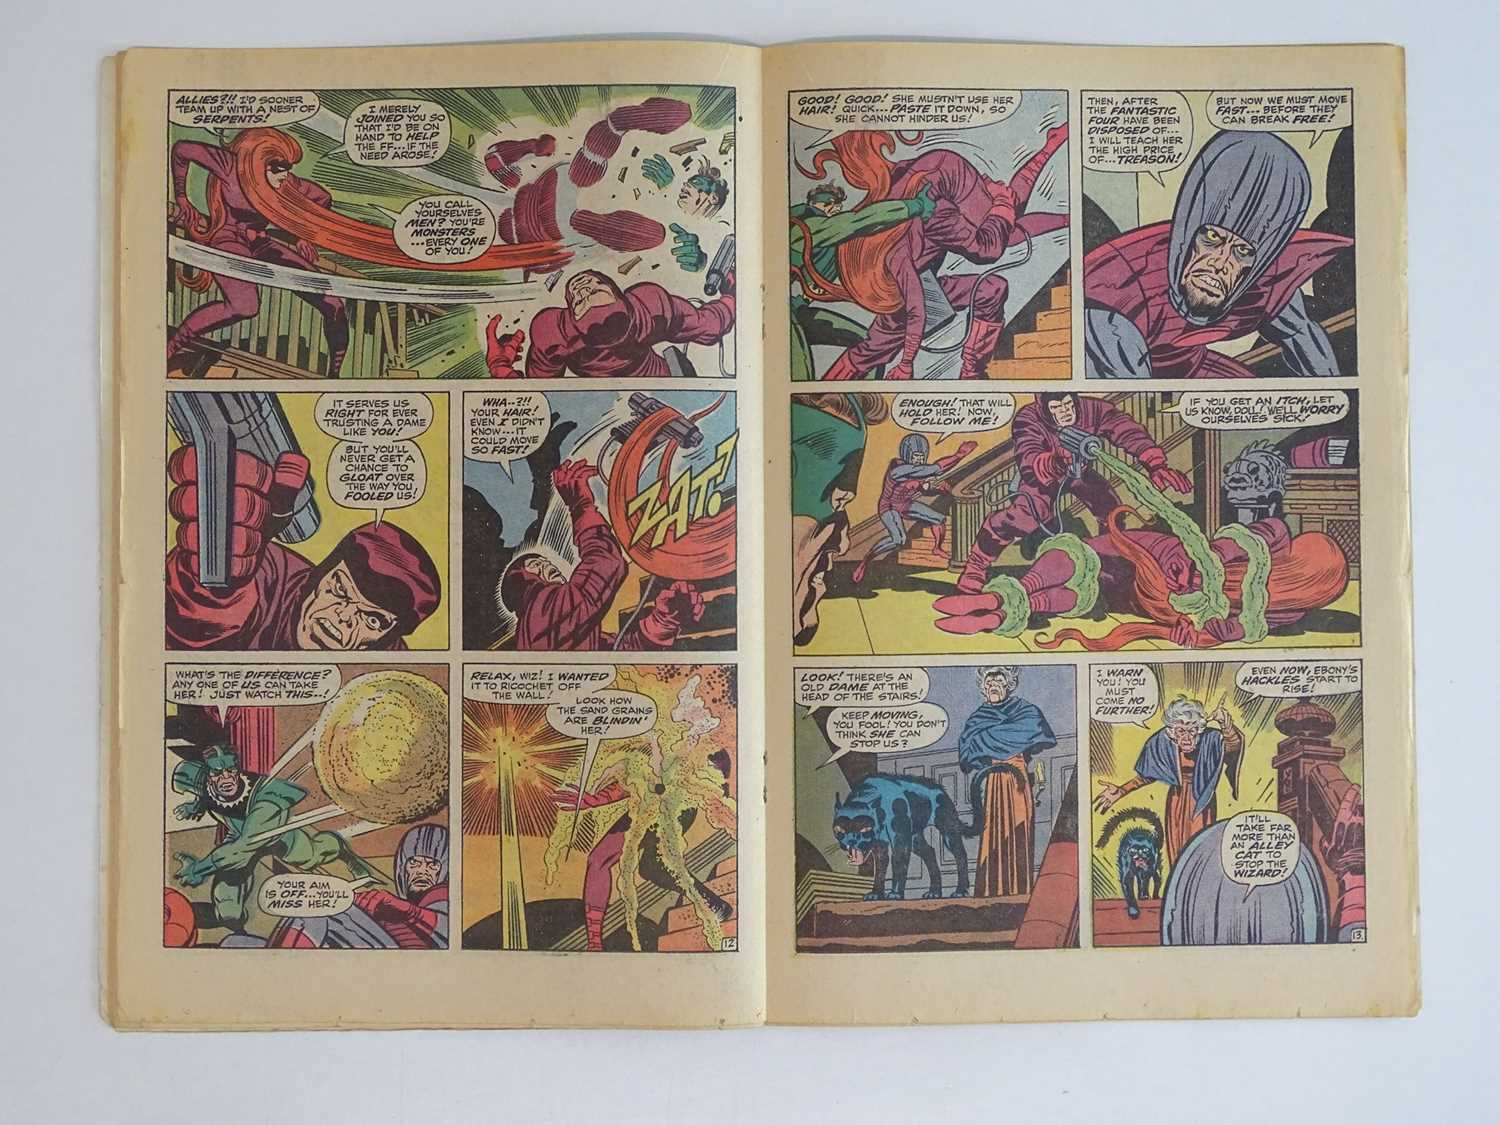 FANTASTIC FOUR #94 - (1970 - MARVEL - UK Price Variant) - Includes First appearance Agatha - Image 5 of 10